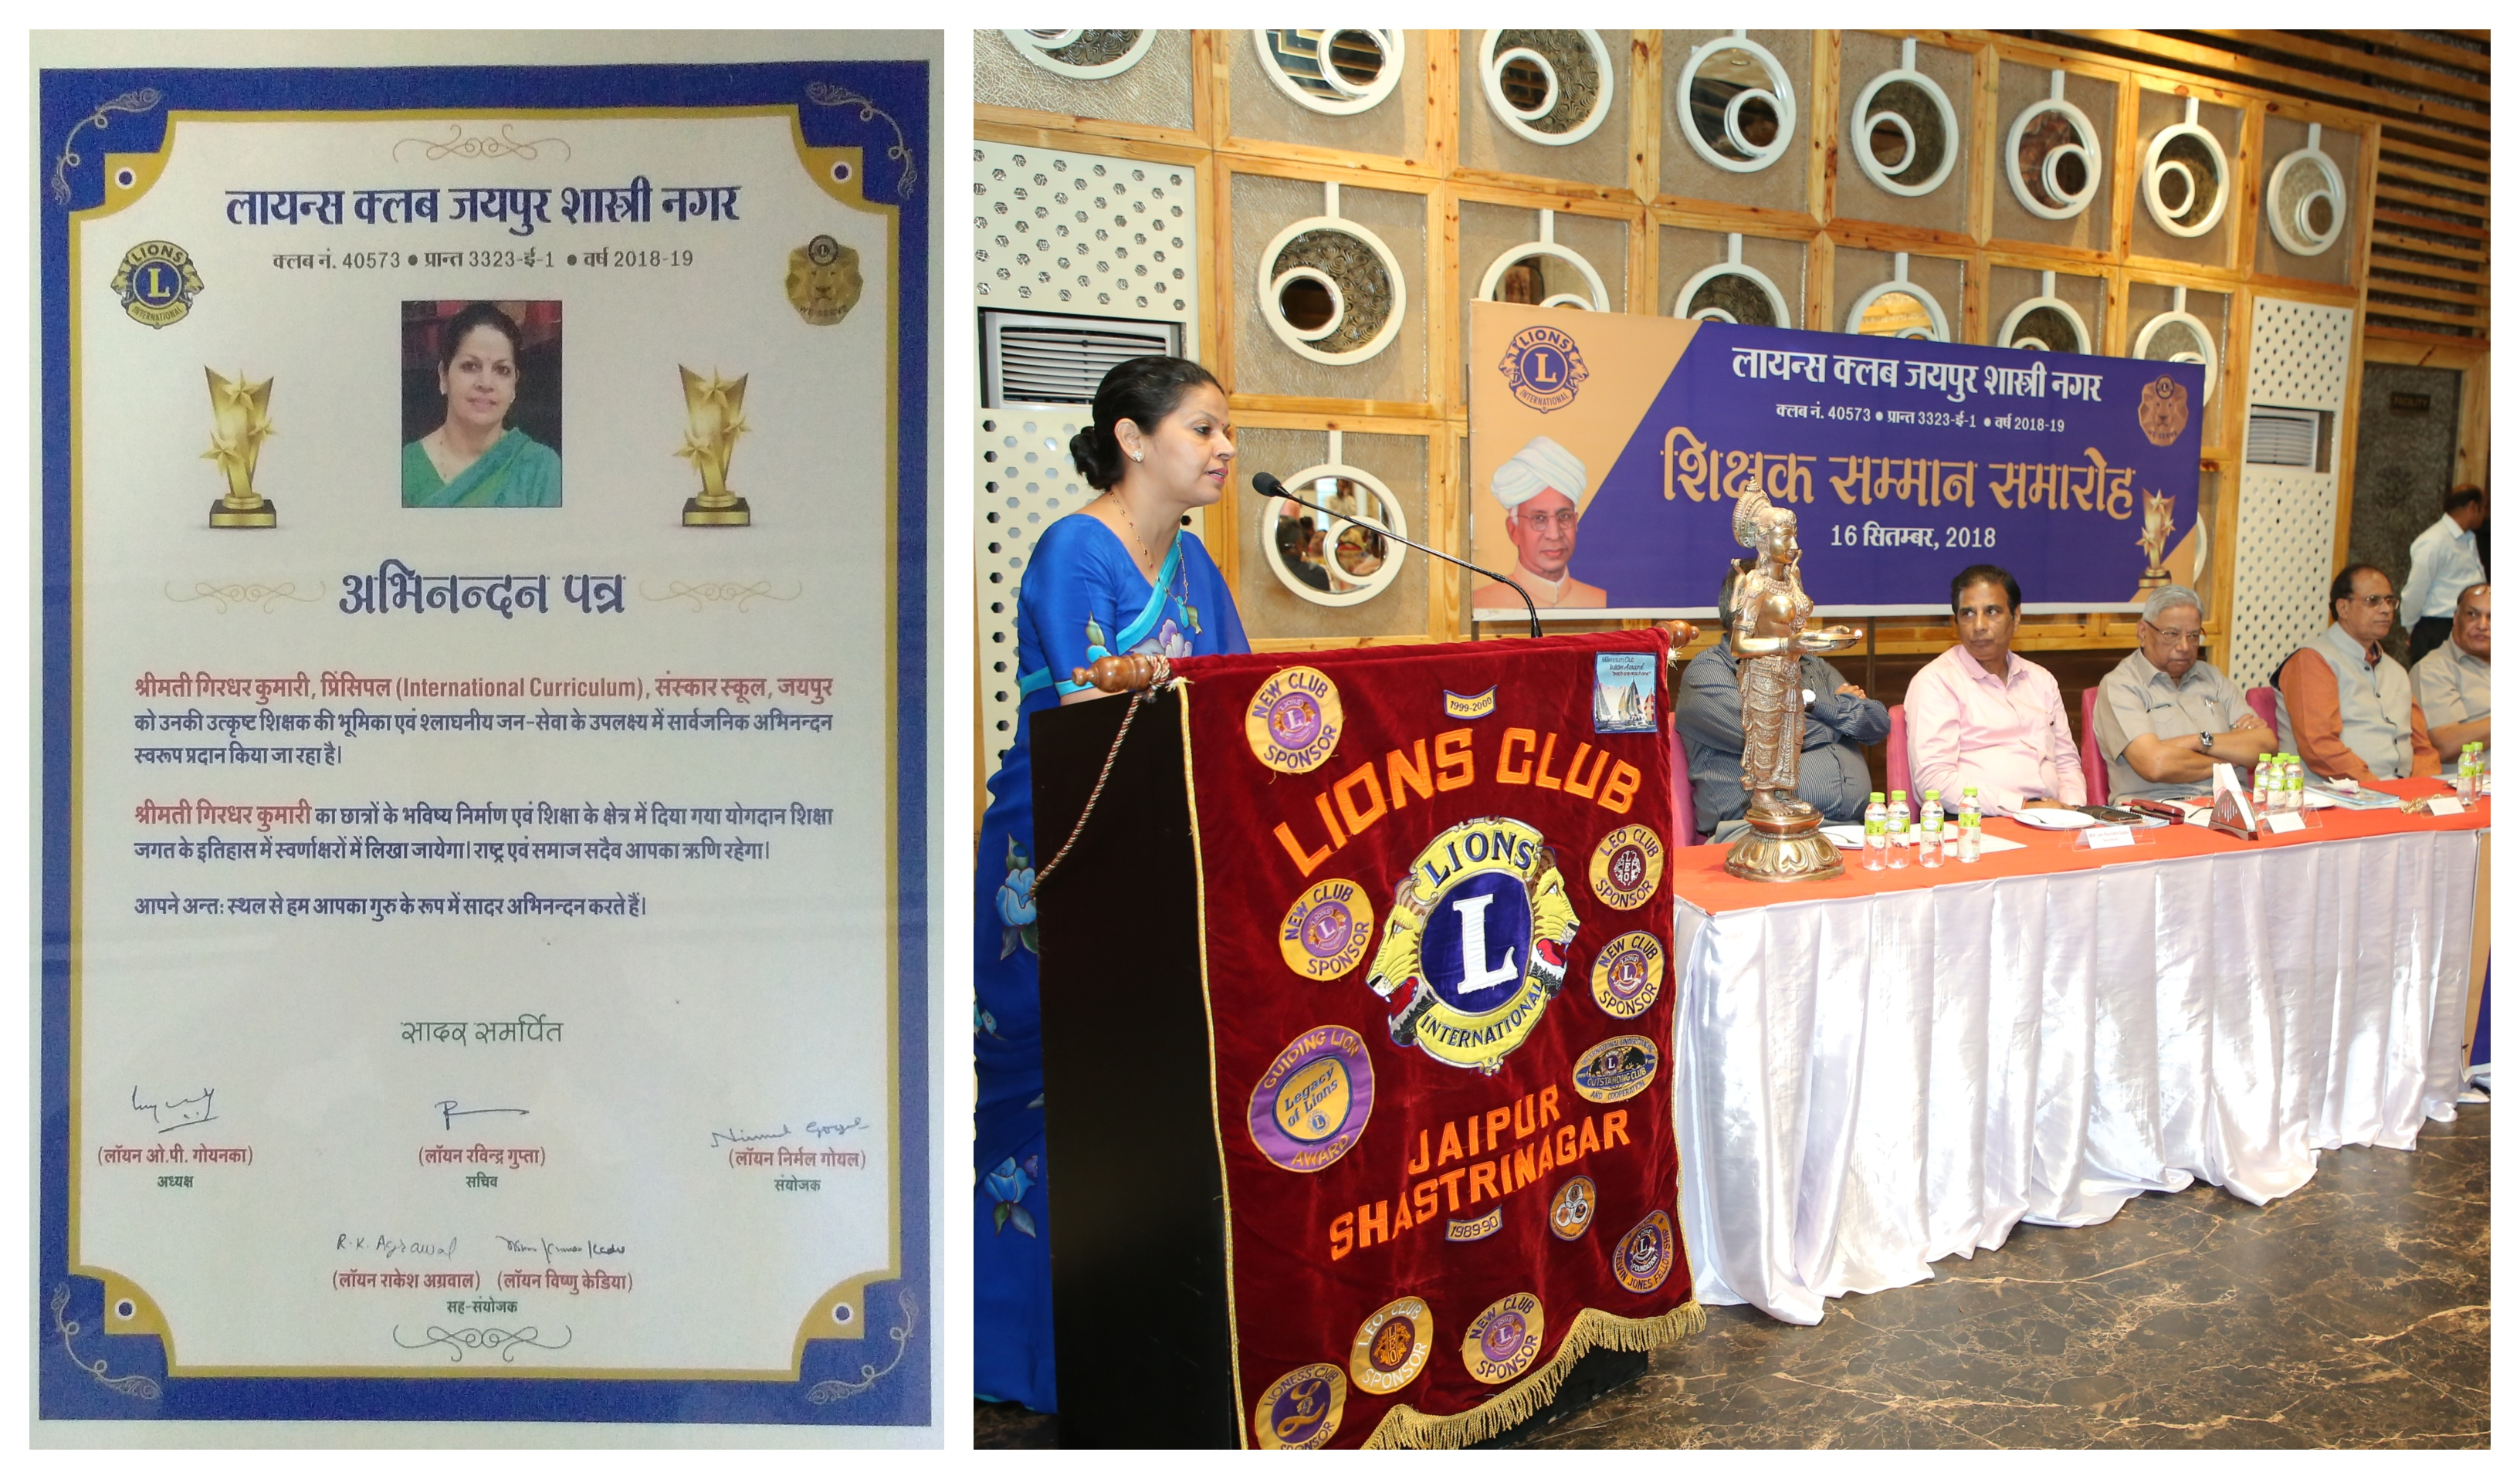 Sanskar School Principal felicitated by Lions Club, Jaipur